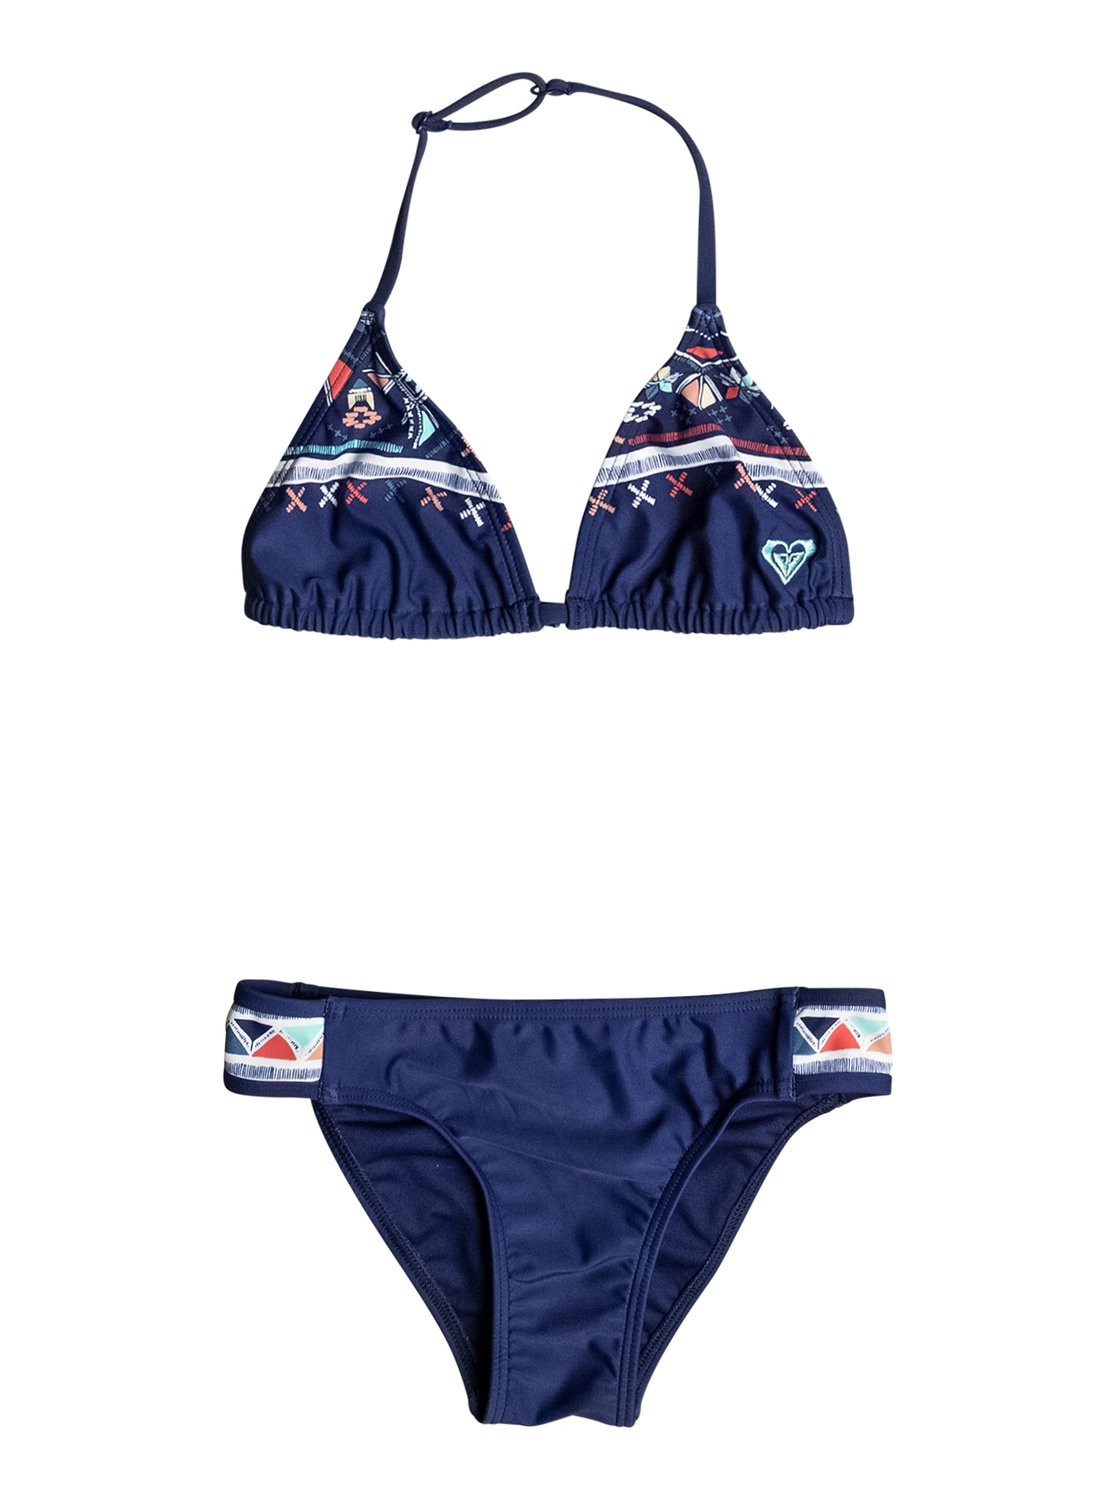 Little Pretty - Ensemble de bikini triangle pour Fille - Roxy